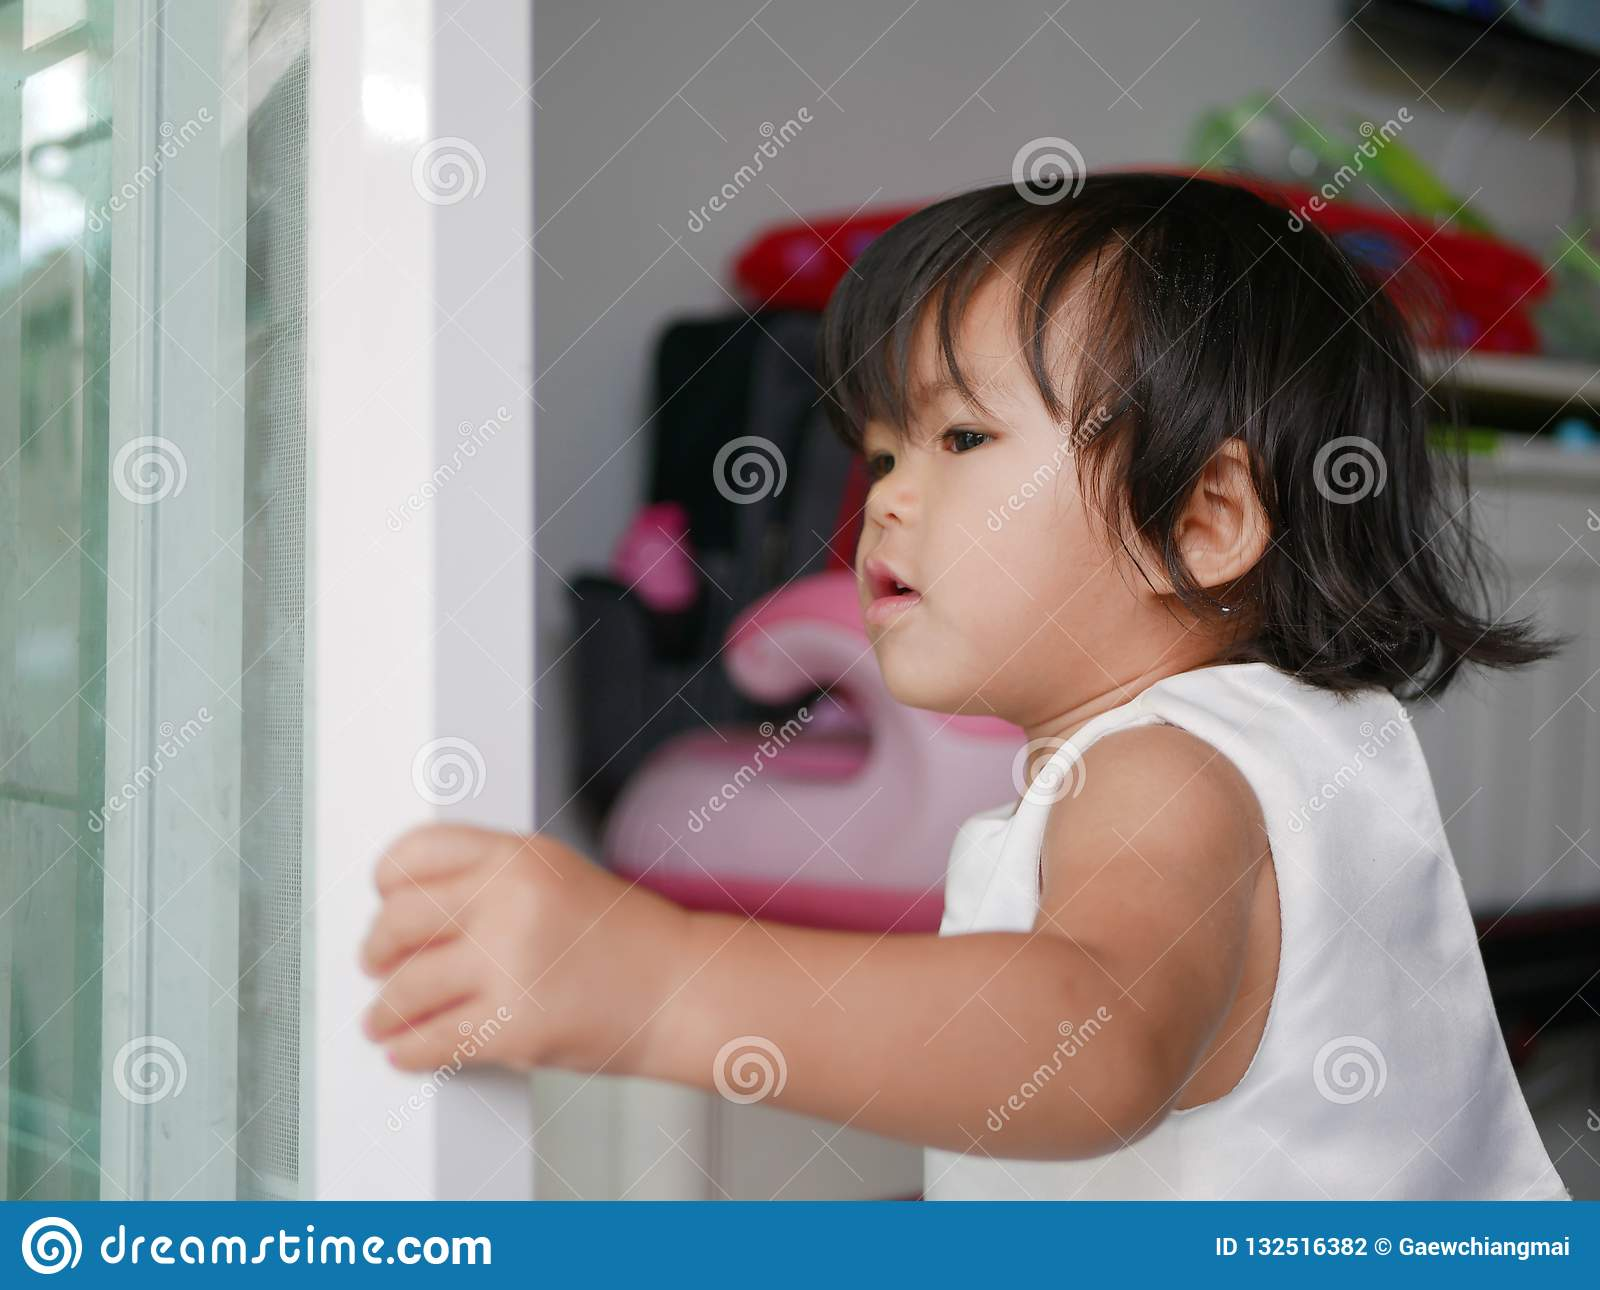 Little Asian baby girl learning to shut / close sliding door by herself